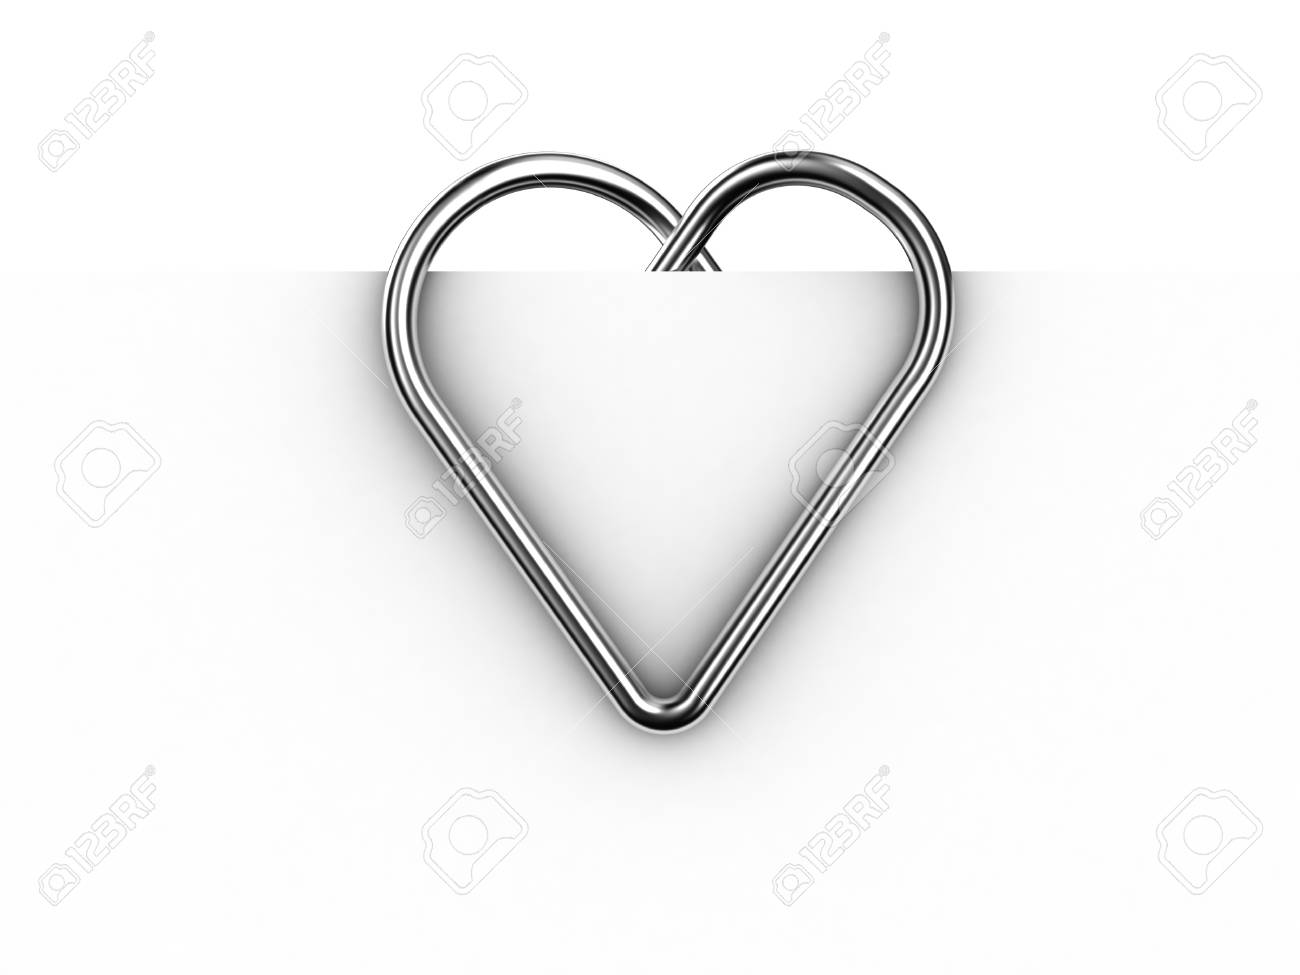 Paper clip illustration in the form of heart on a sheet of paper Stock Illustration - 11183155